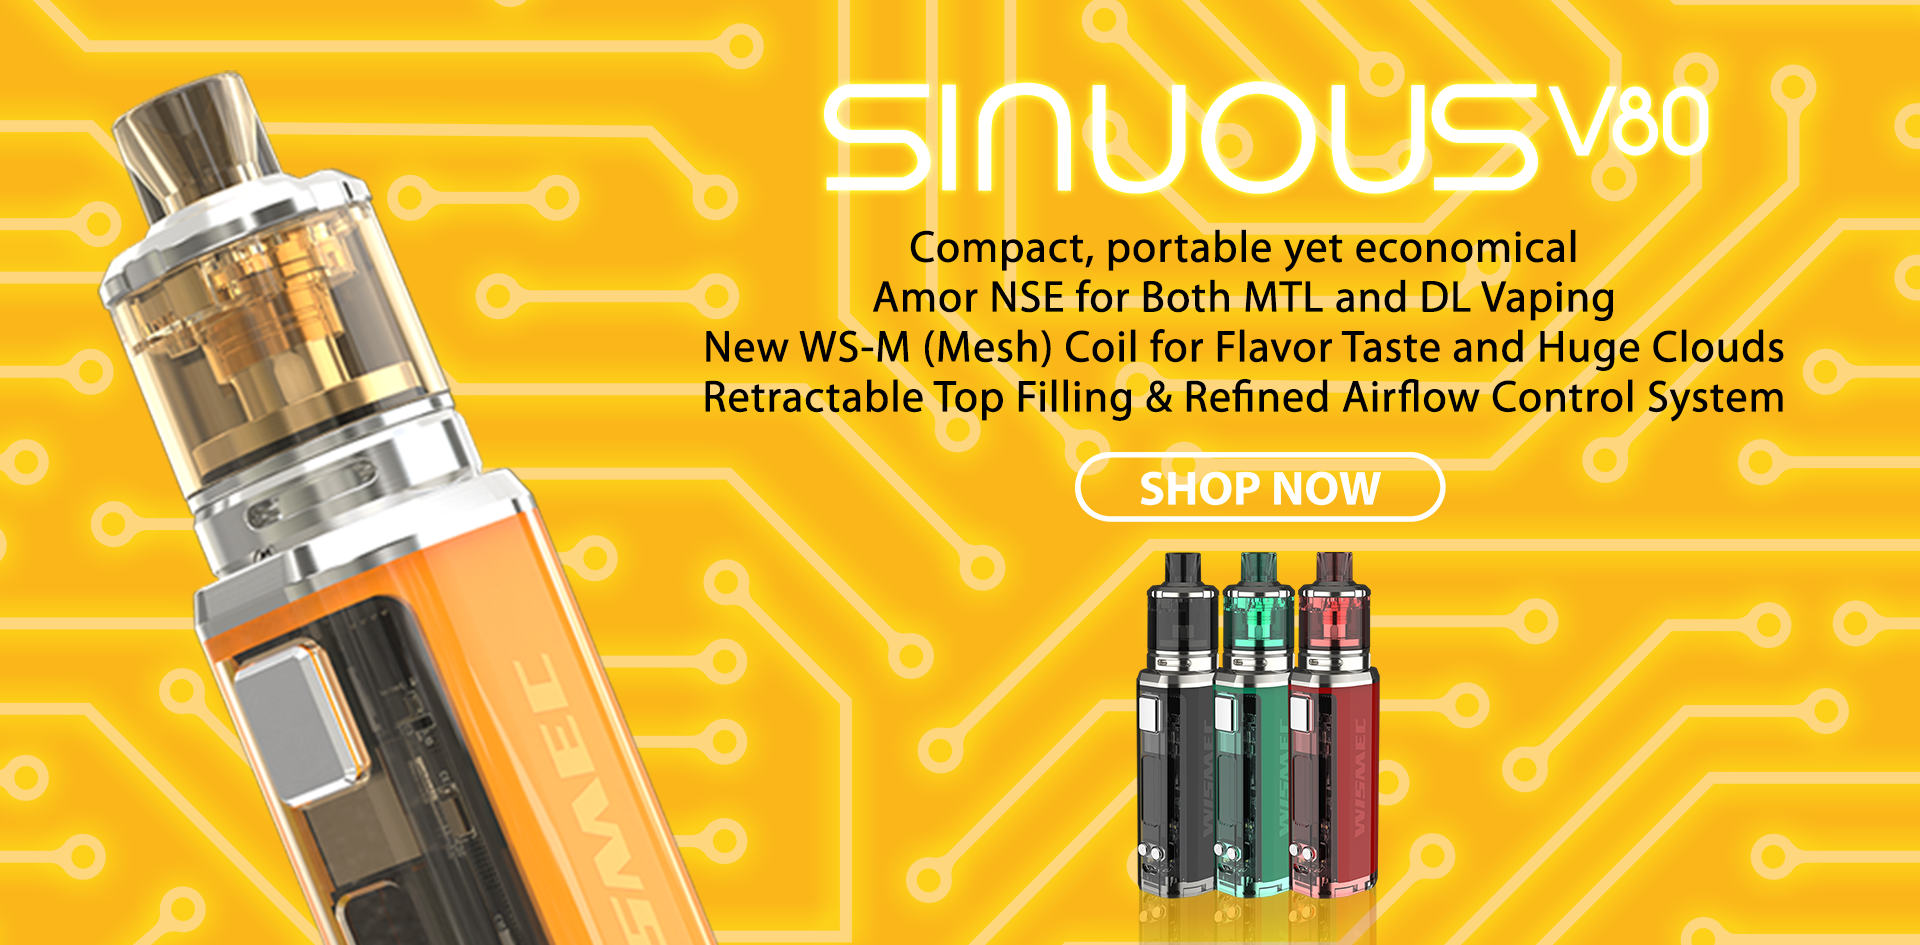 Wismec SINUOUS V80 with Amor NSE Kit